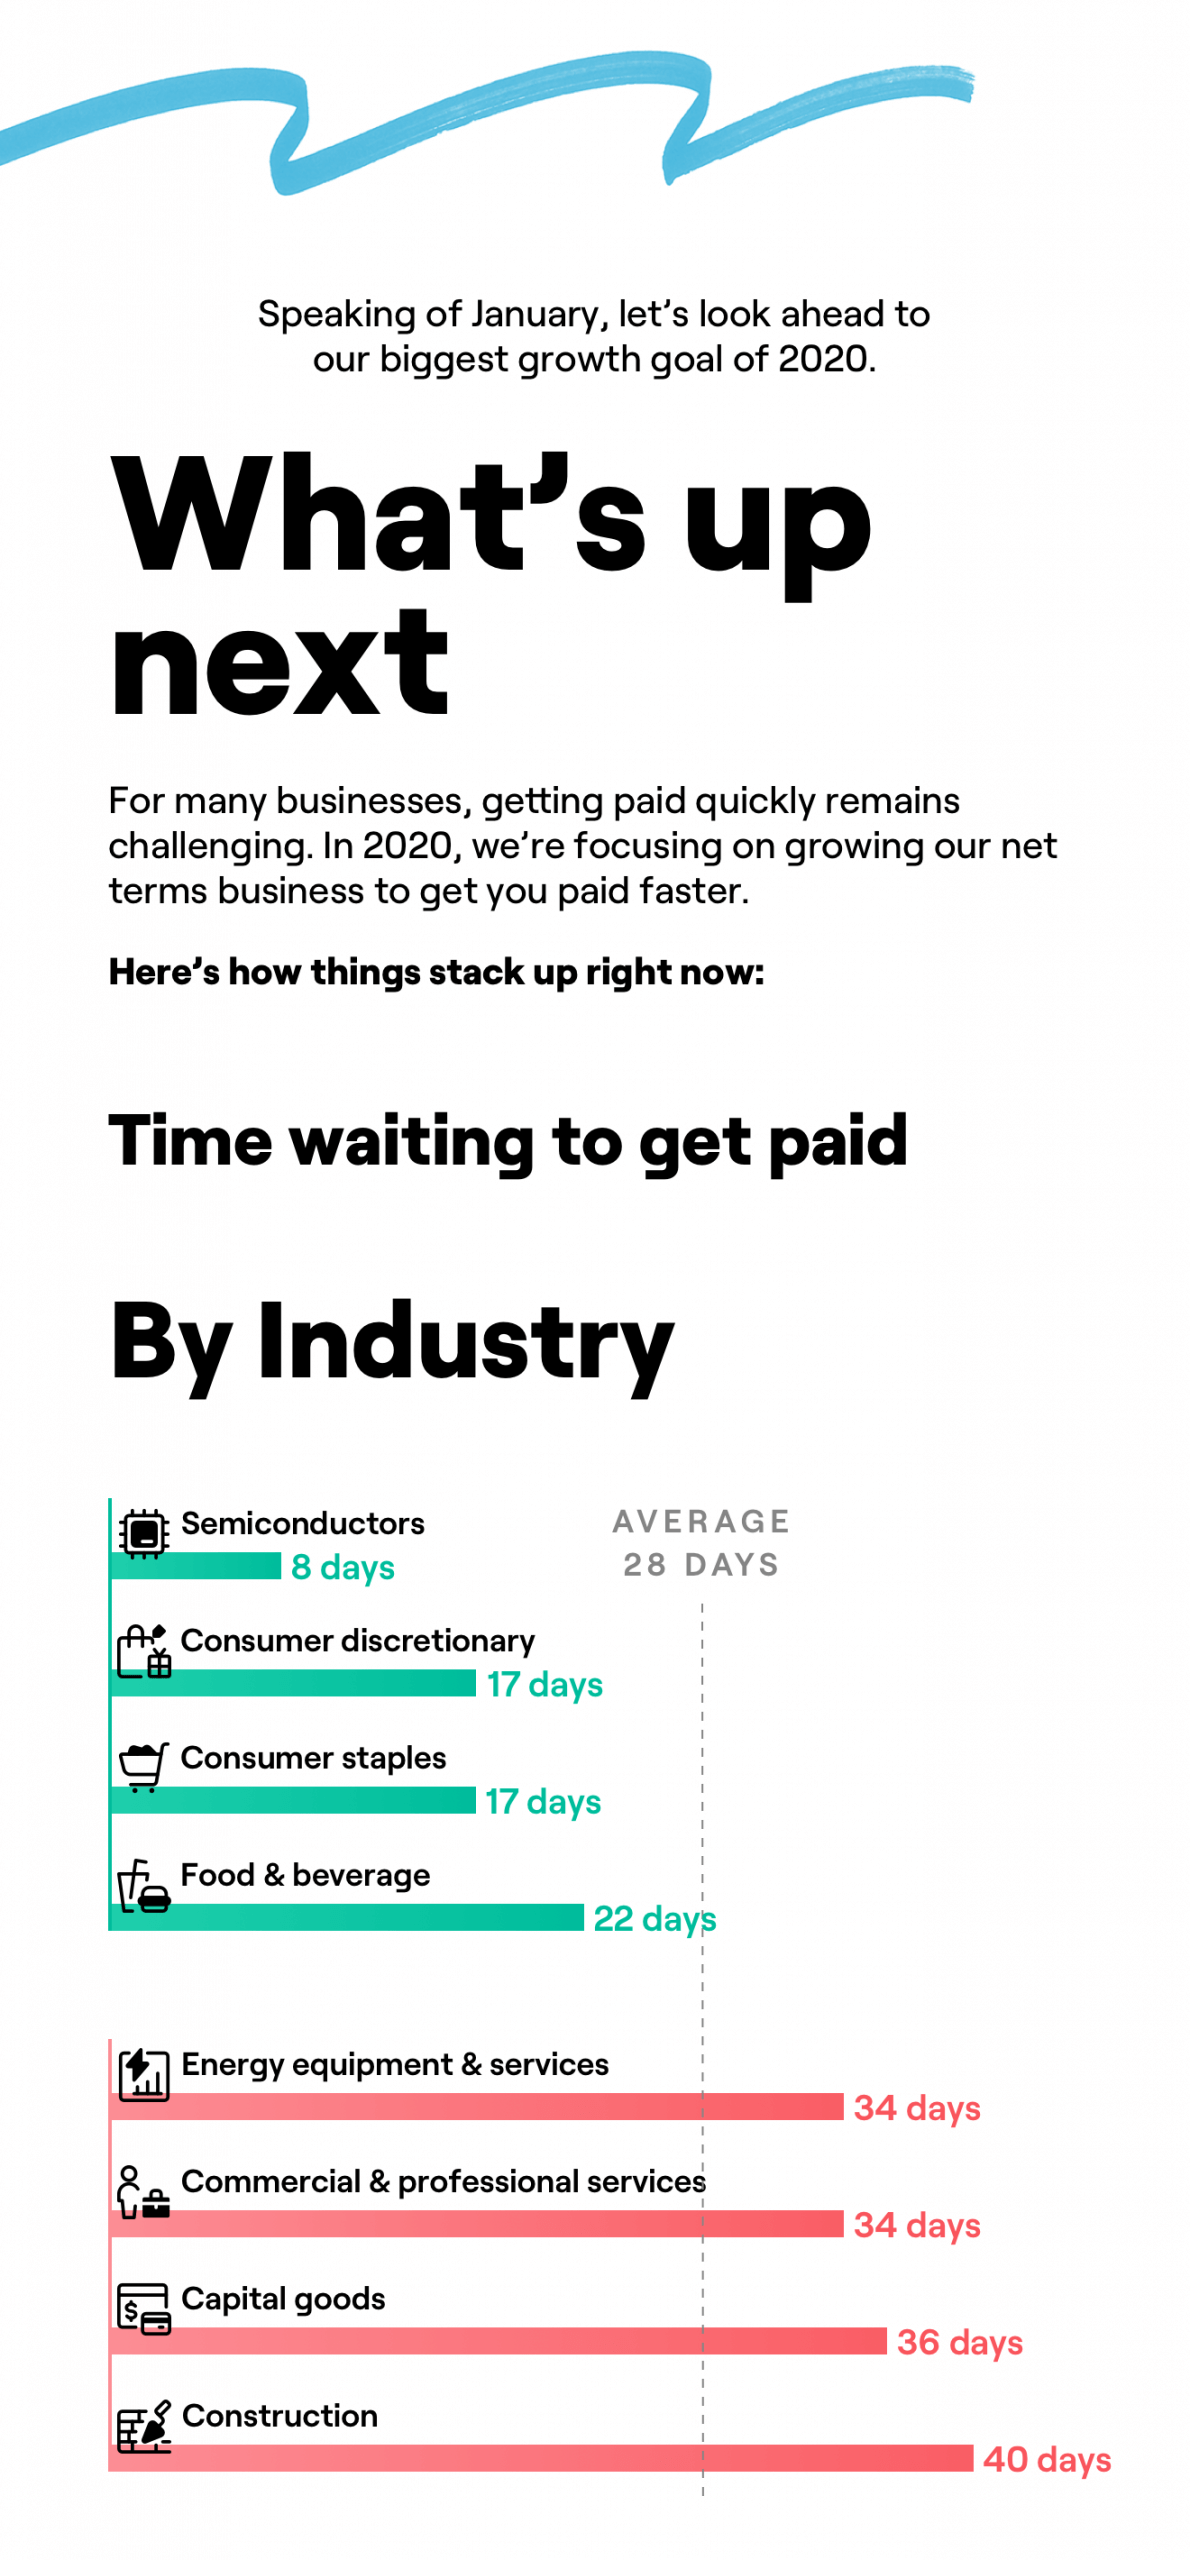 Construction industry clients waited the longest to get paid, an average 40 days. Semiconductor companies only waited 8 days.